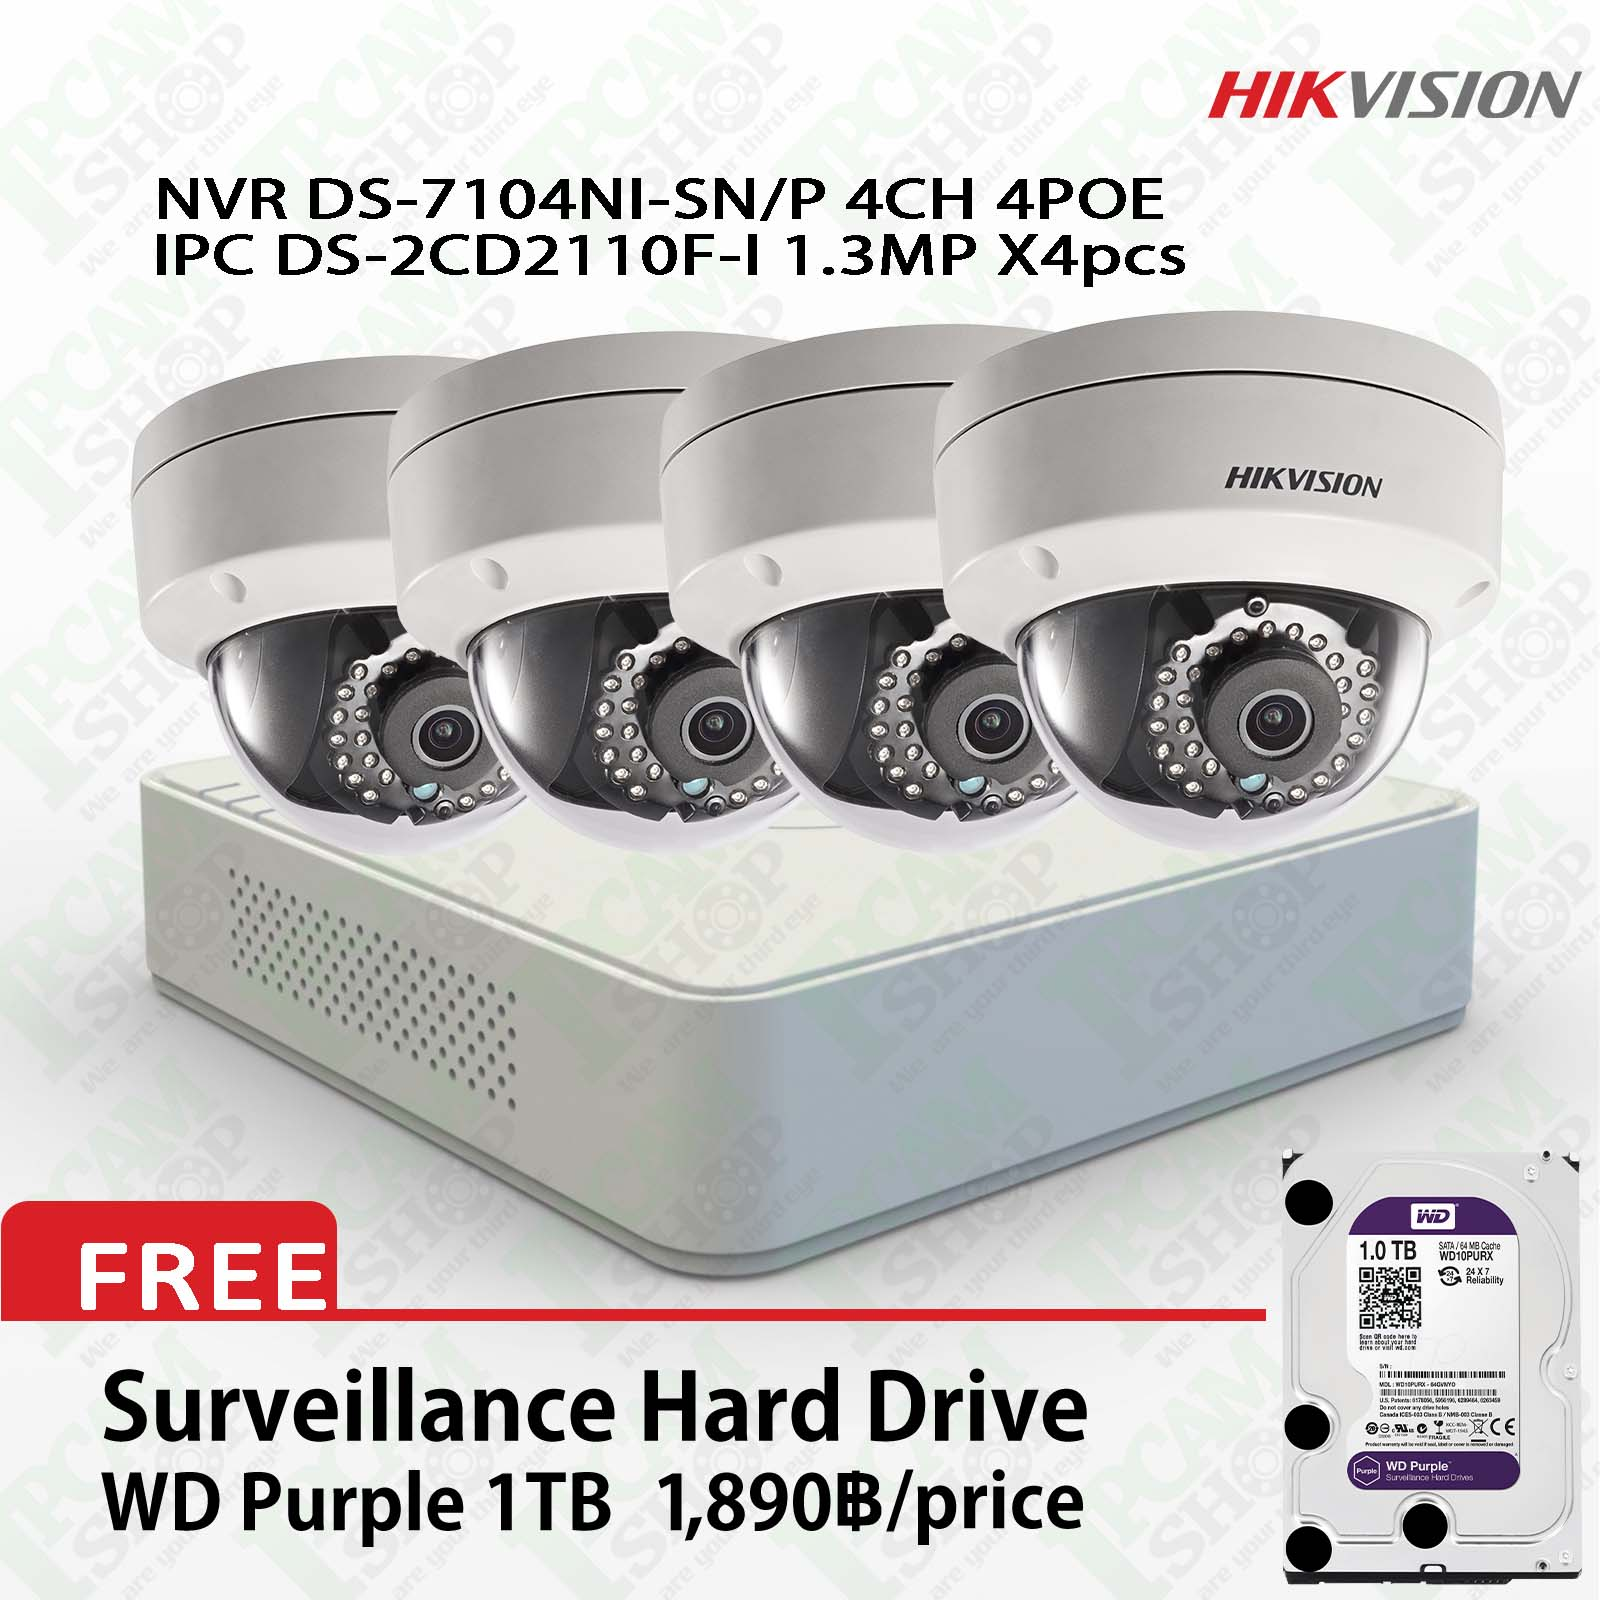 Hikvision POE Kit DS-7104NI-SN/P, DS-2CD2110F-Ix4